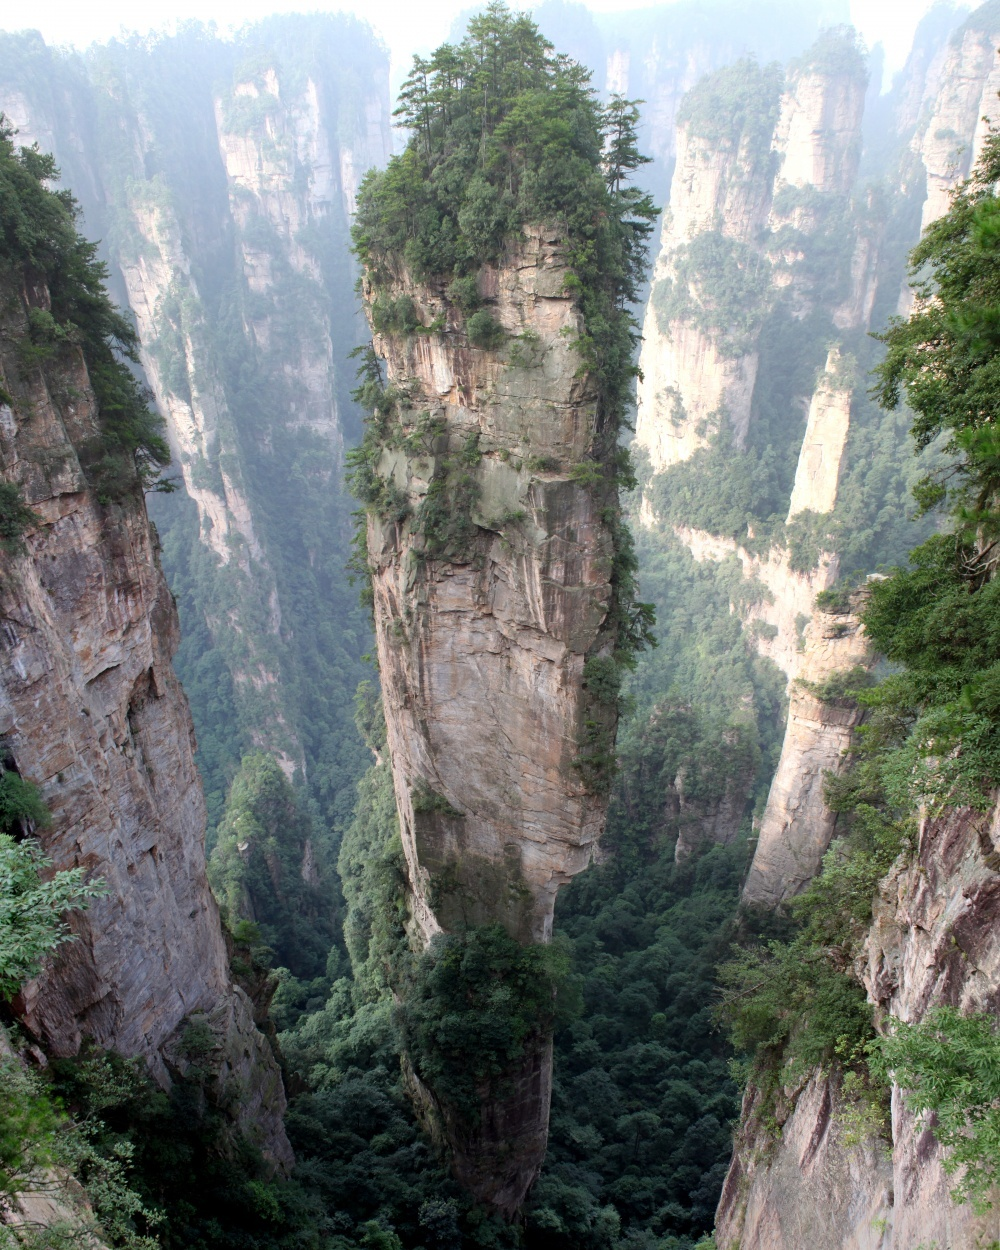 The 100 best photographs ever taken without photoshop - Tianzi Mountain (China) — inspiration for the landscapes of Pandora in Avatar